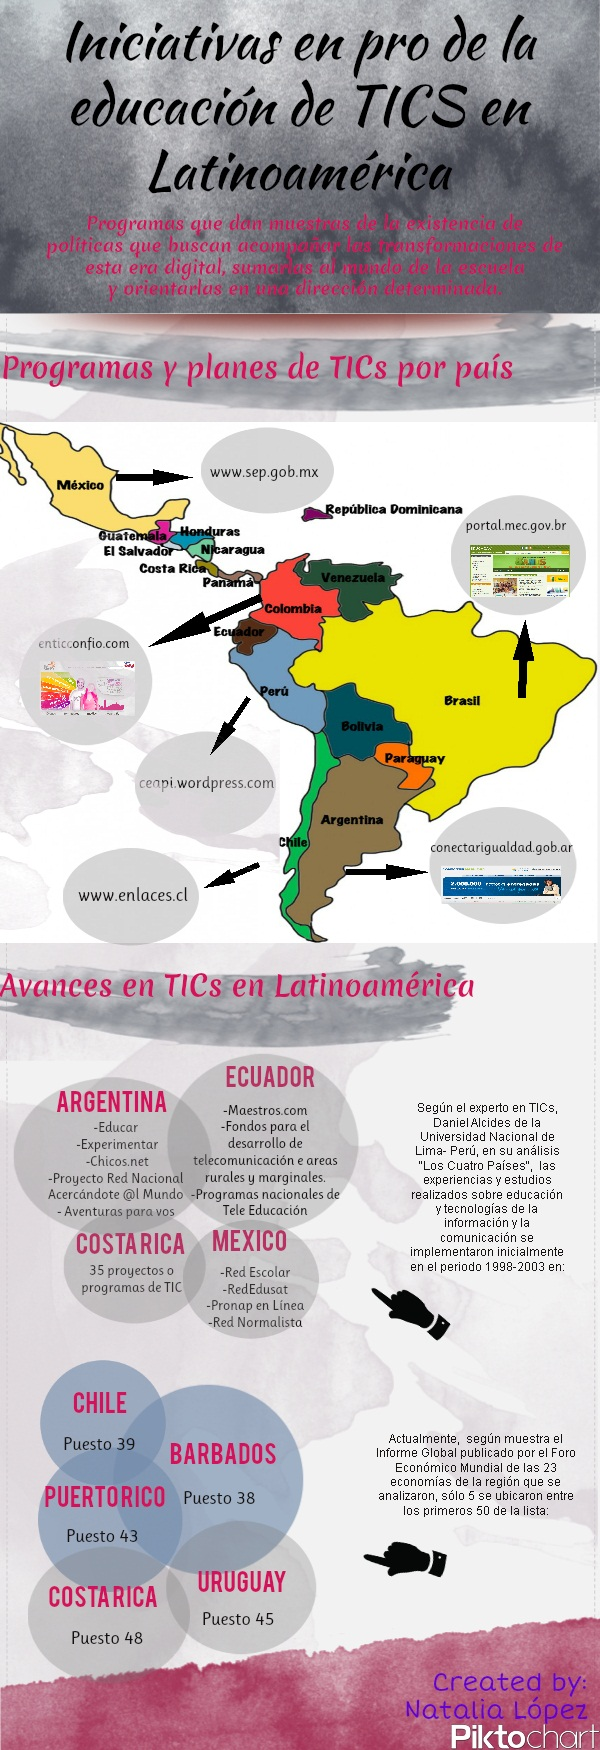 Link to Educacin de TICs en Latinoamrica